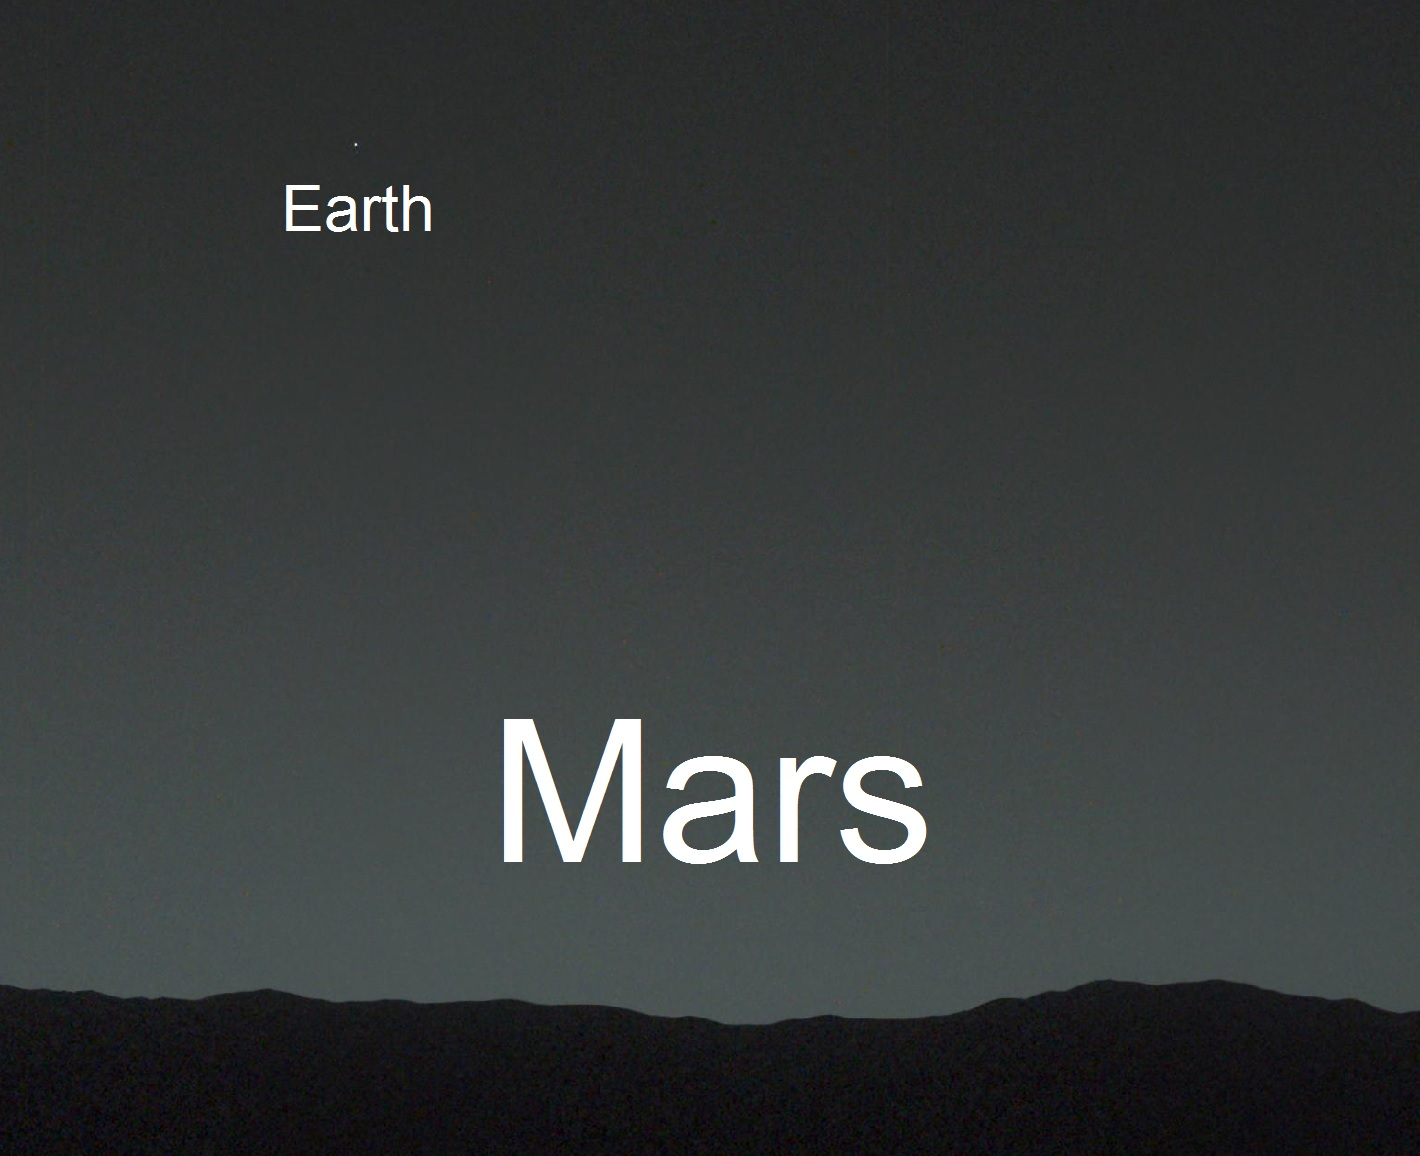 how to make mars earth